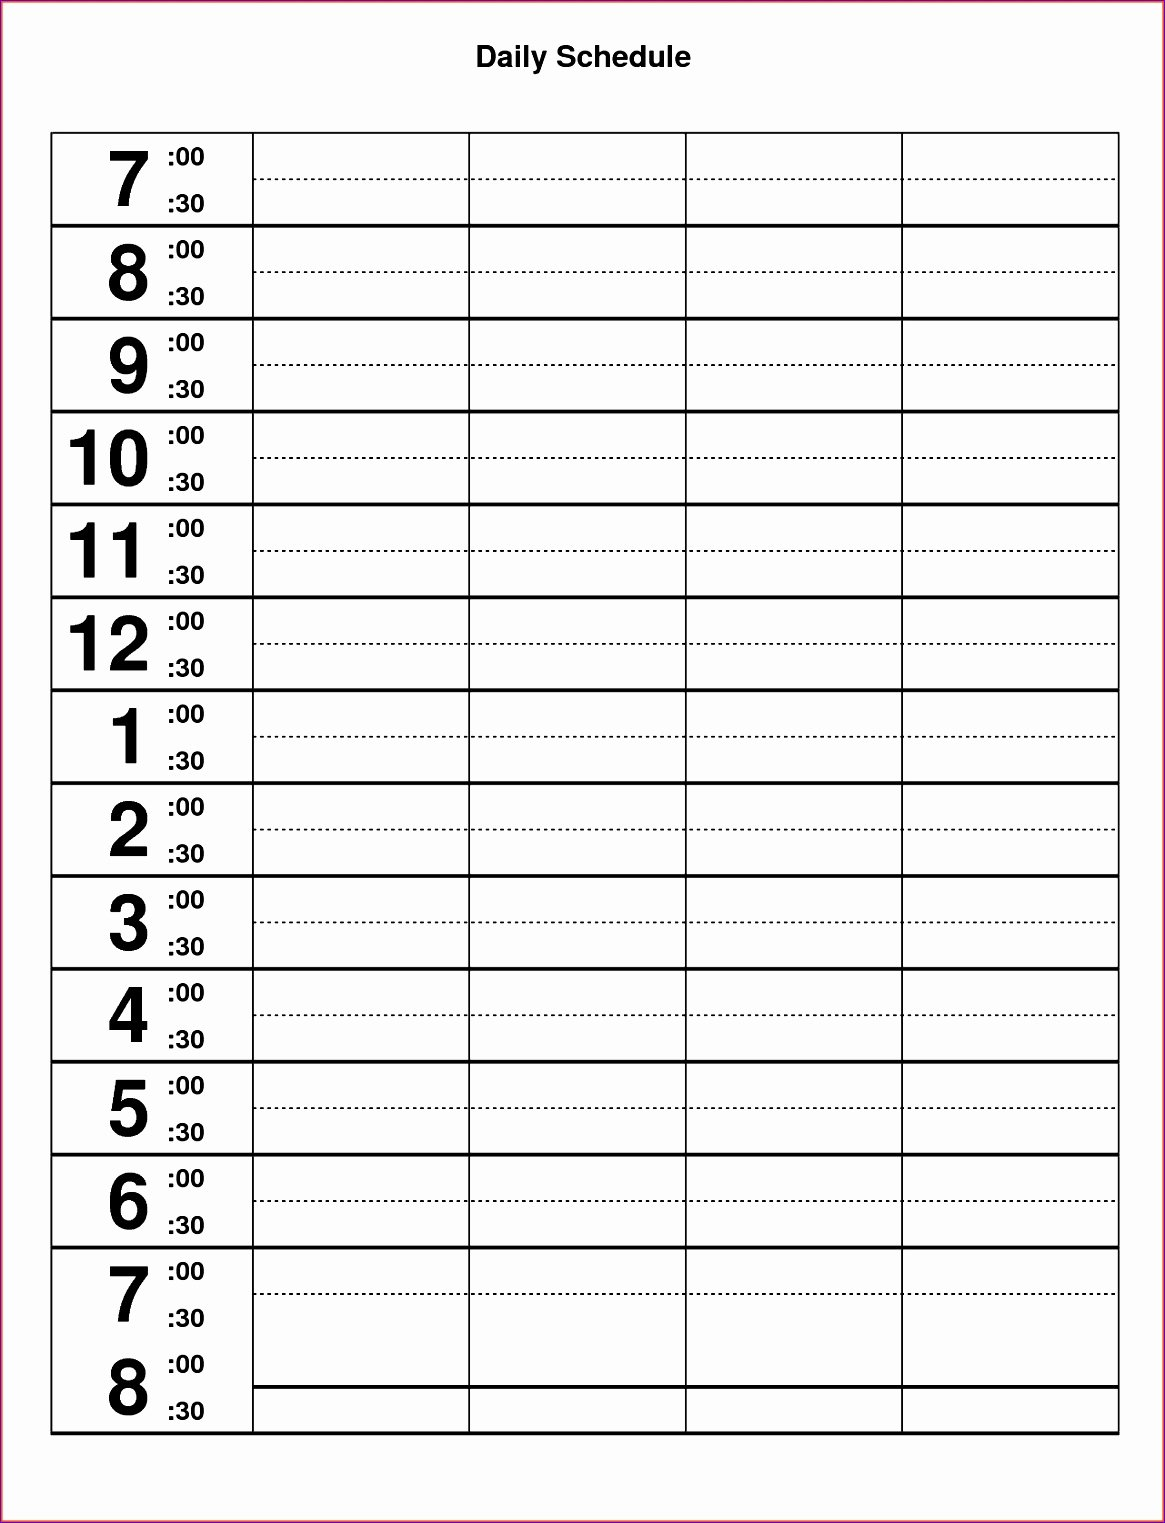 Daily Schedule Excel Template Elegant 10 Excel Hourly Schedule Template Exceltemplates